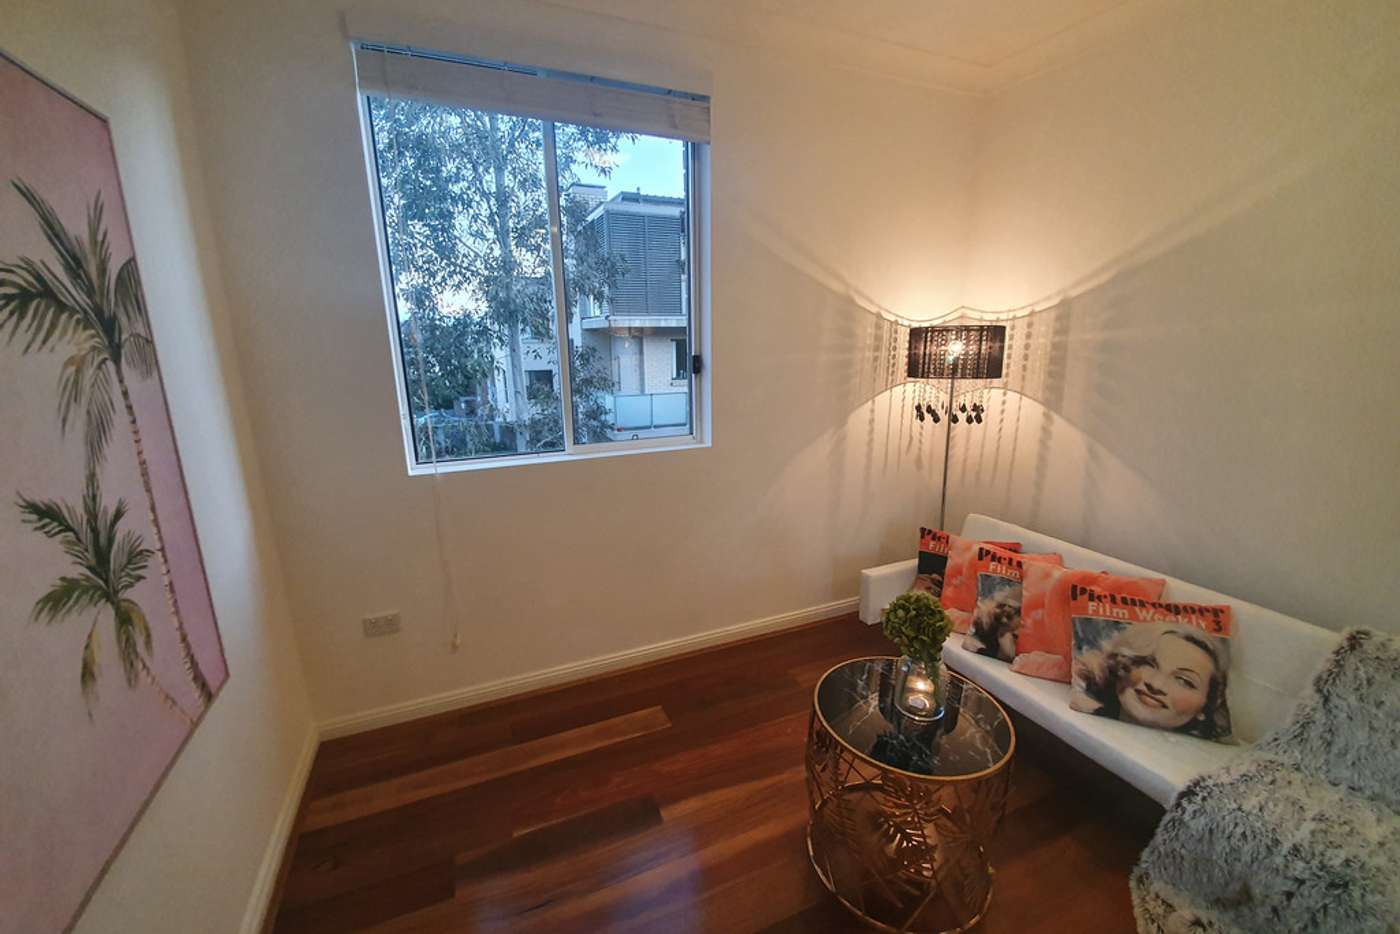 Sixth view of Homely townhouse listing, 9T/11 O'REILLY STREET, Parramatta NSW 2150